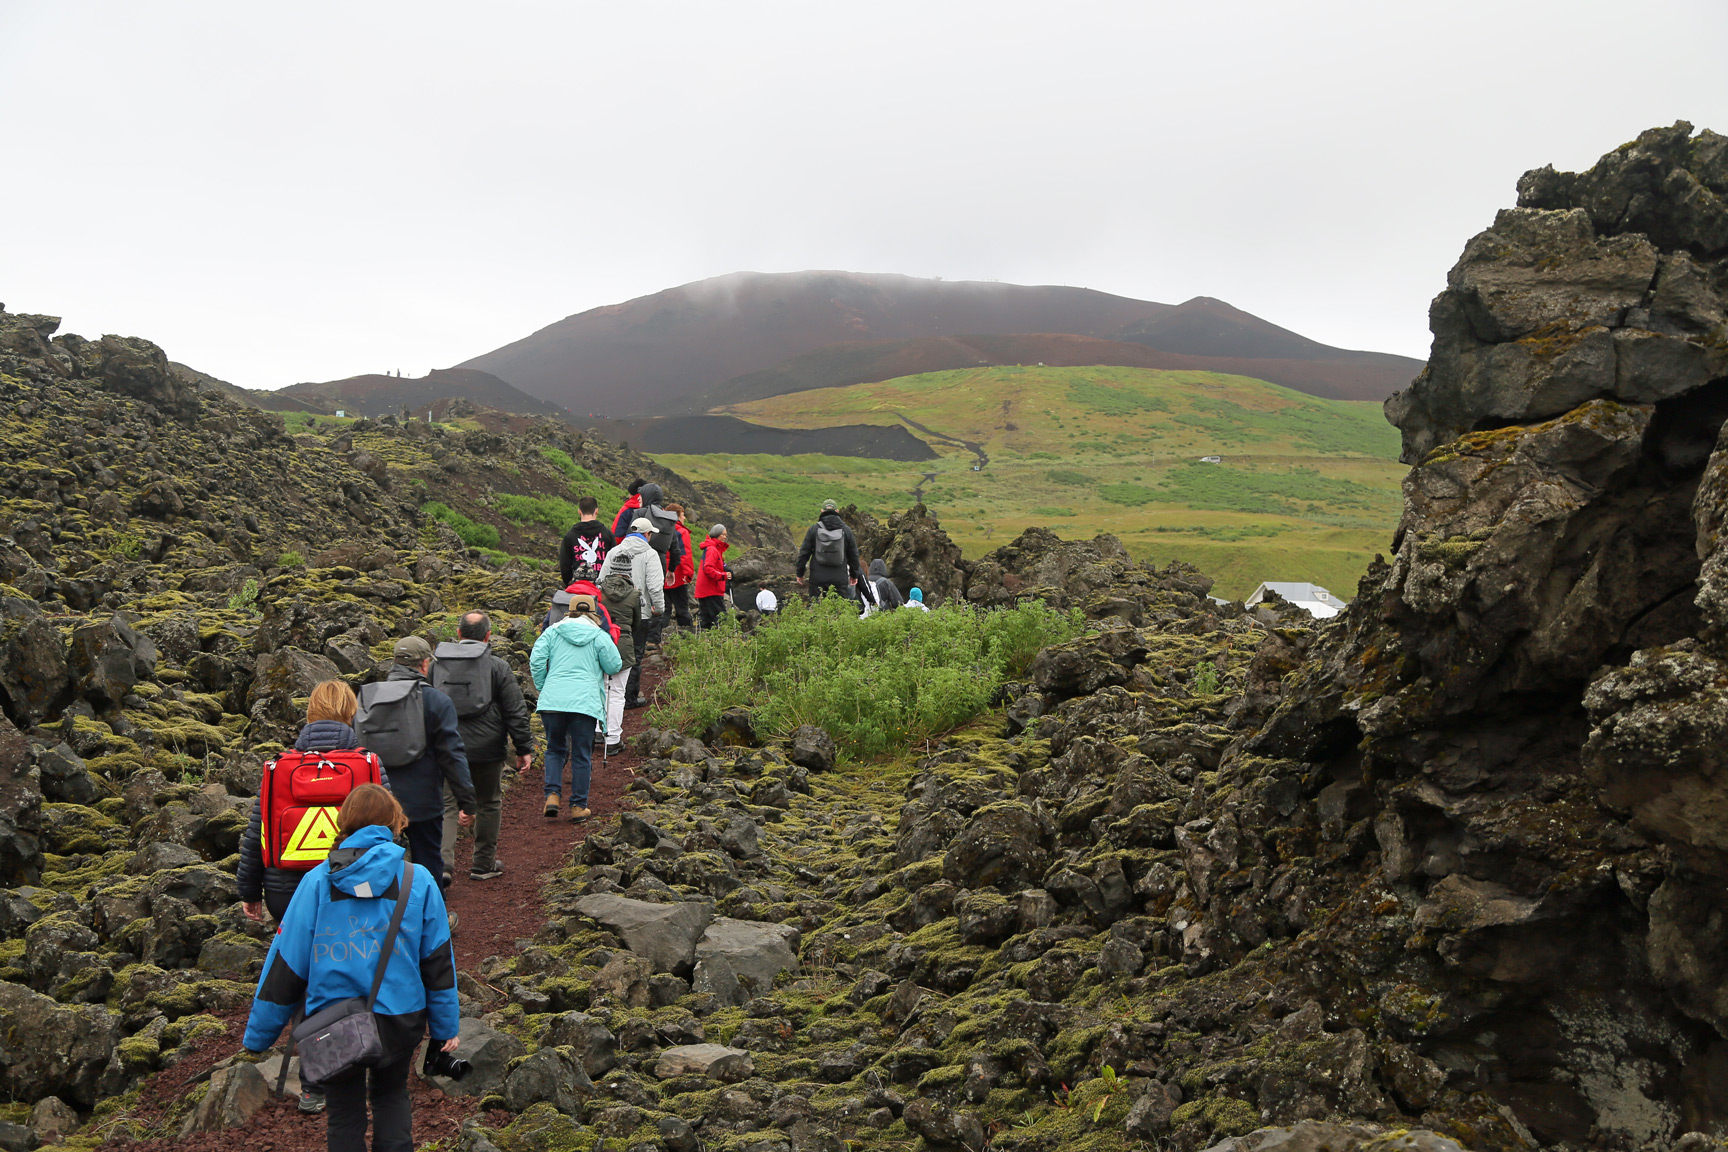 Hiking the recent lava flow towards Eldfjell volcano in the mist.